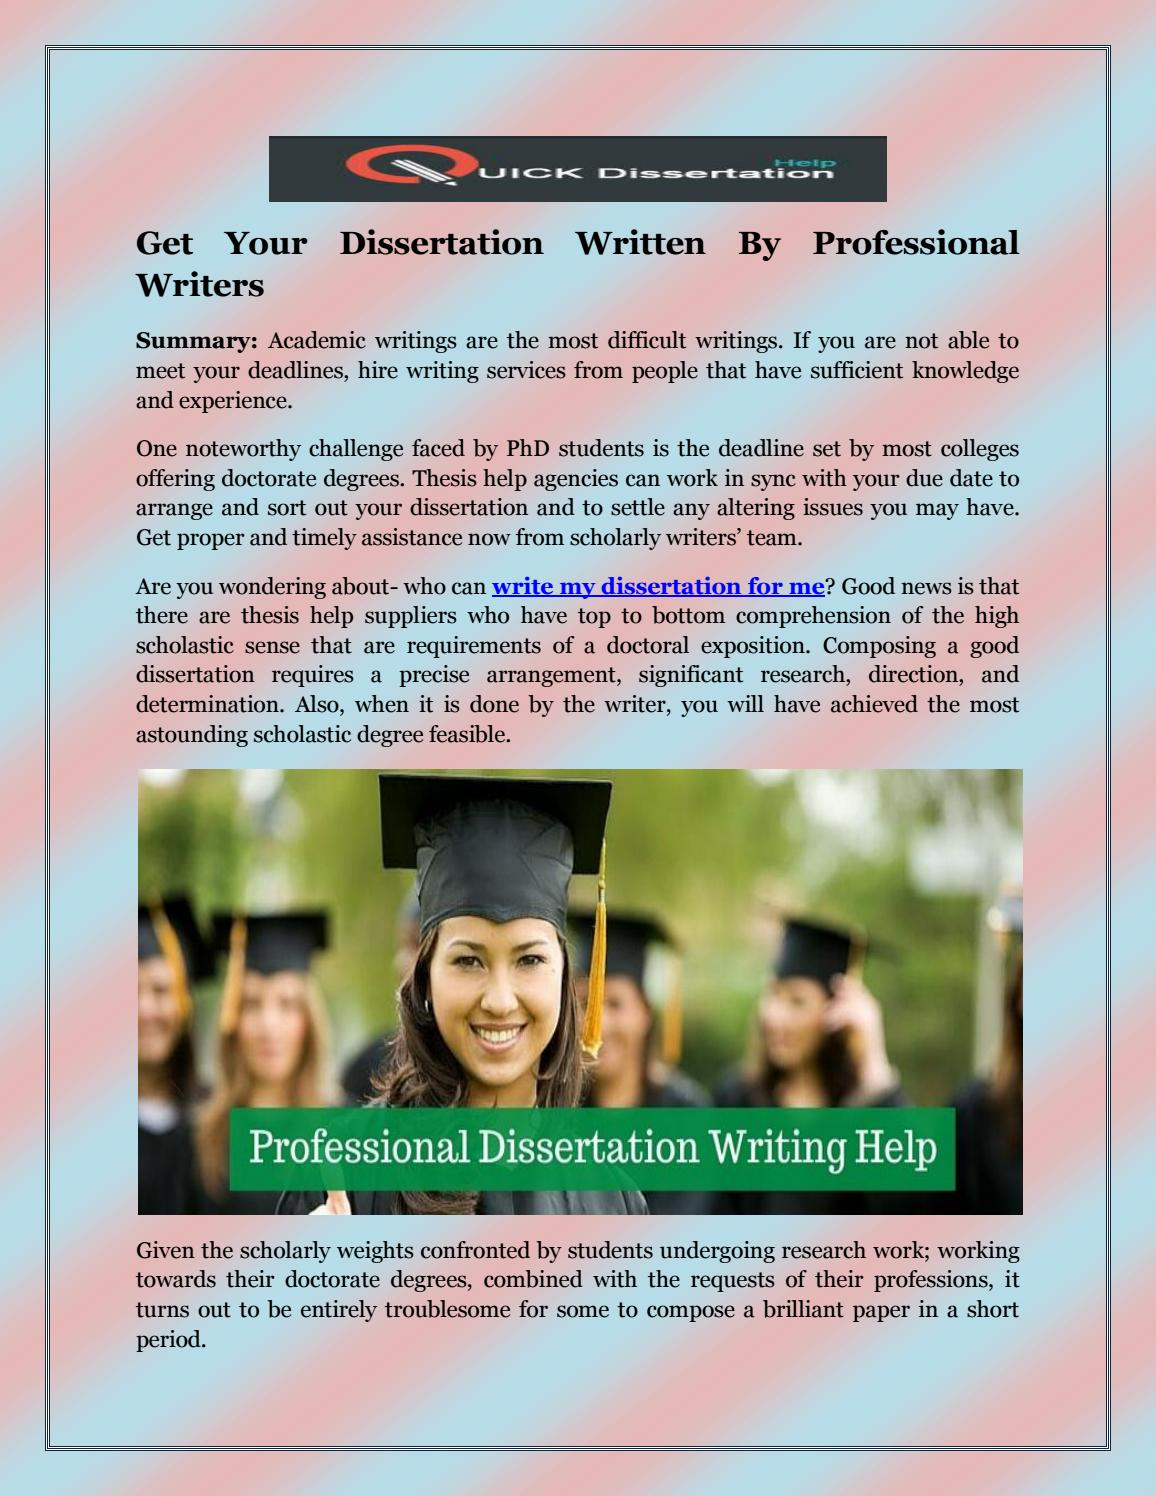 Get your dissertation written for you